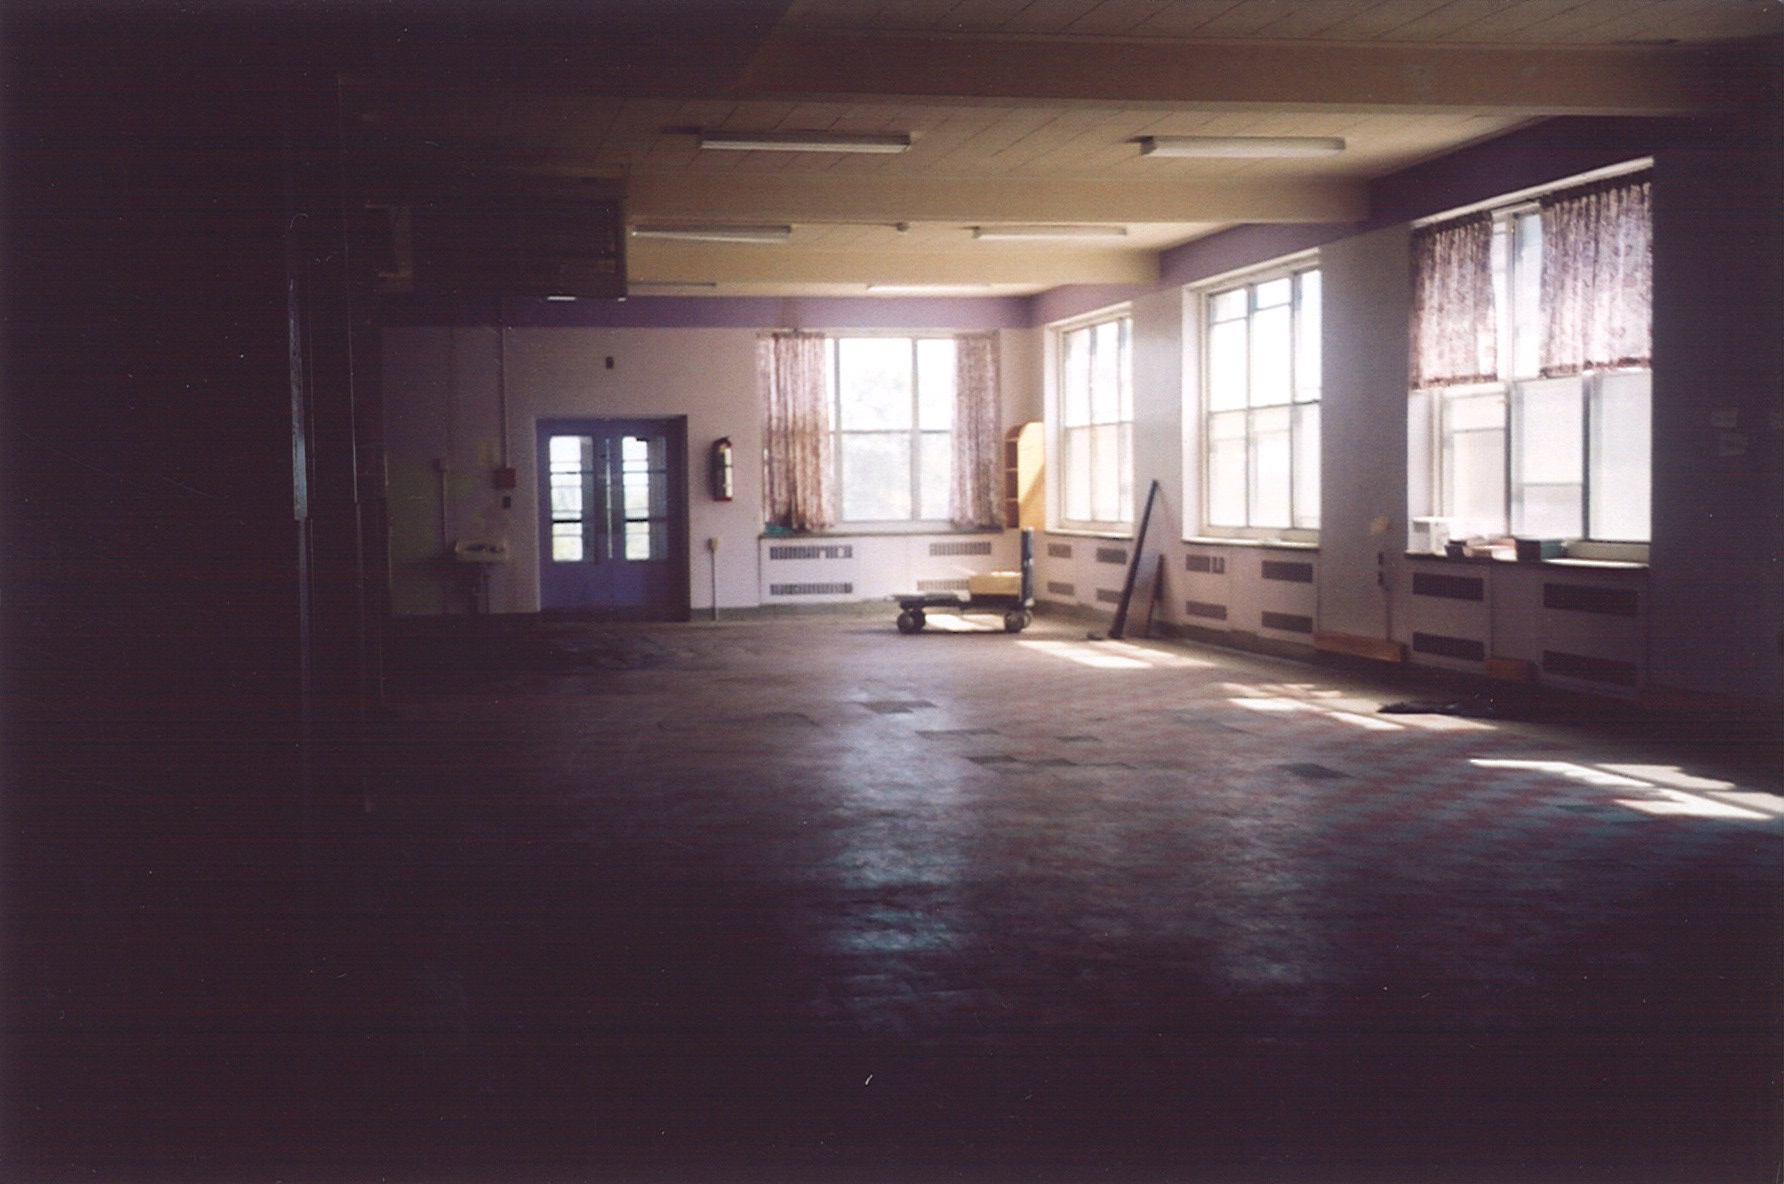 Empty ward after closure in 2009. Photo: Thelma Whealtey.